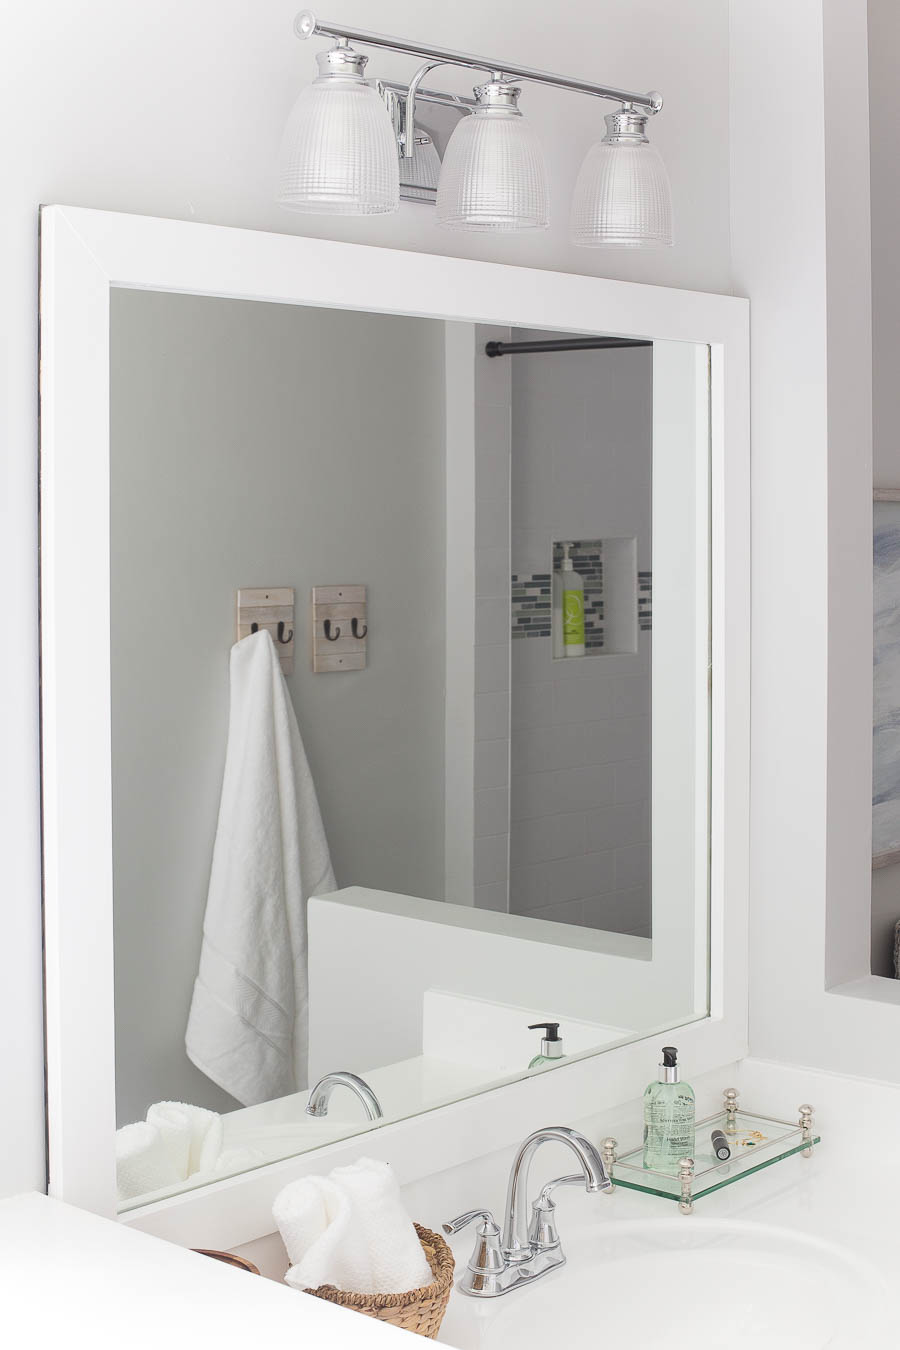 frame around bathroom mirror how to frame a bathroom mirror easy diy project 18375